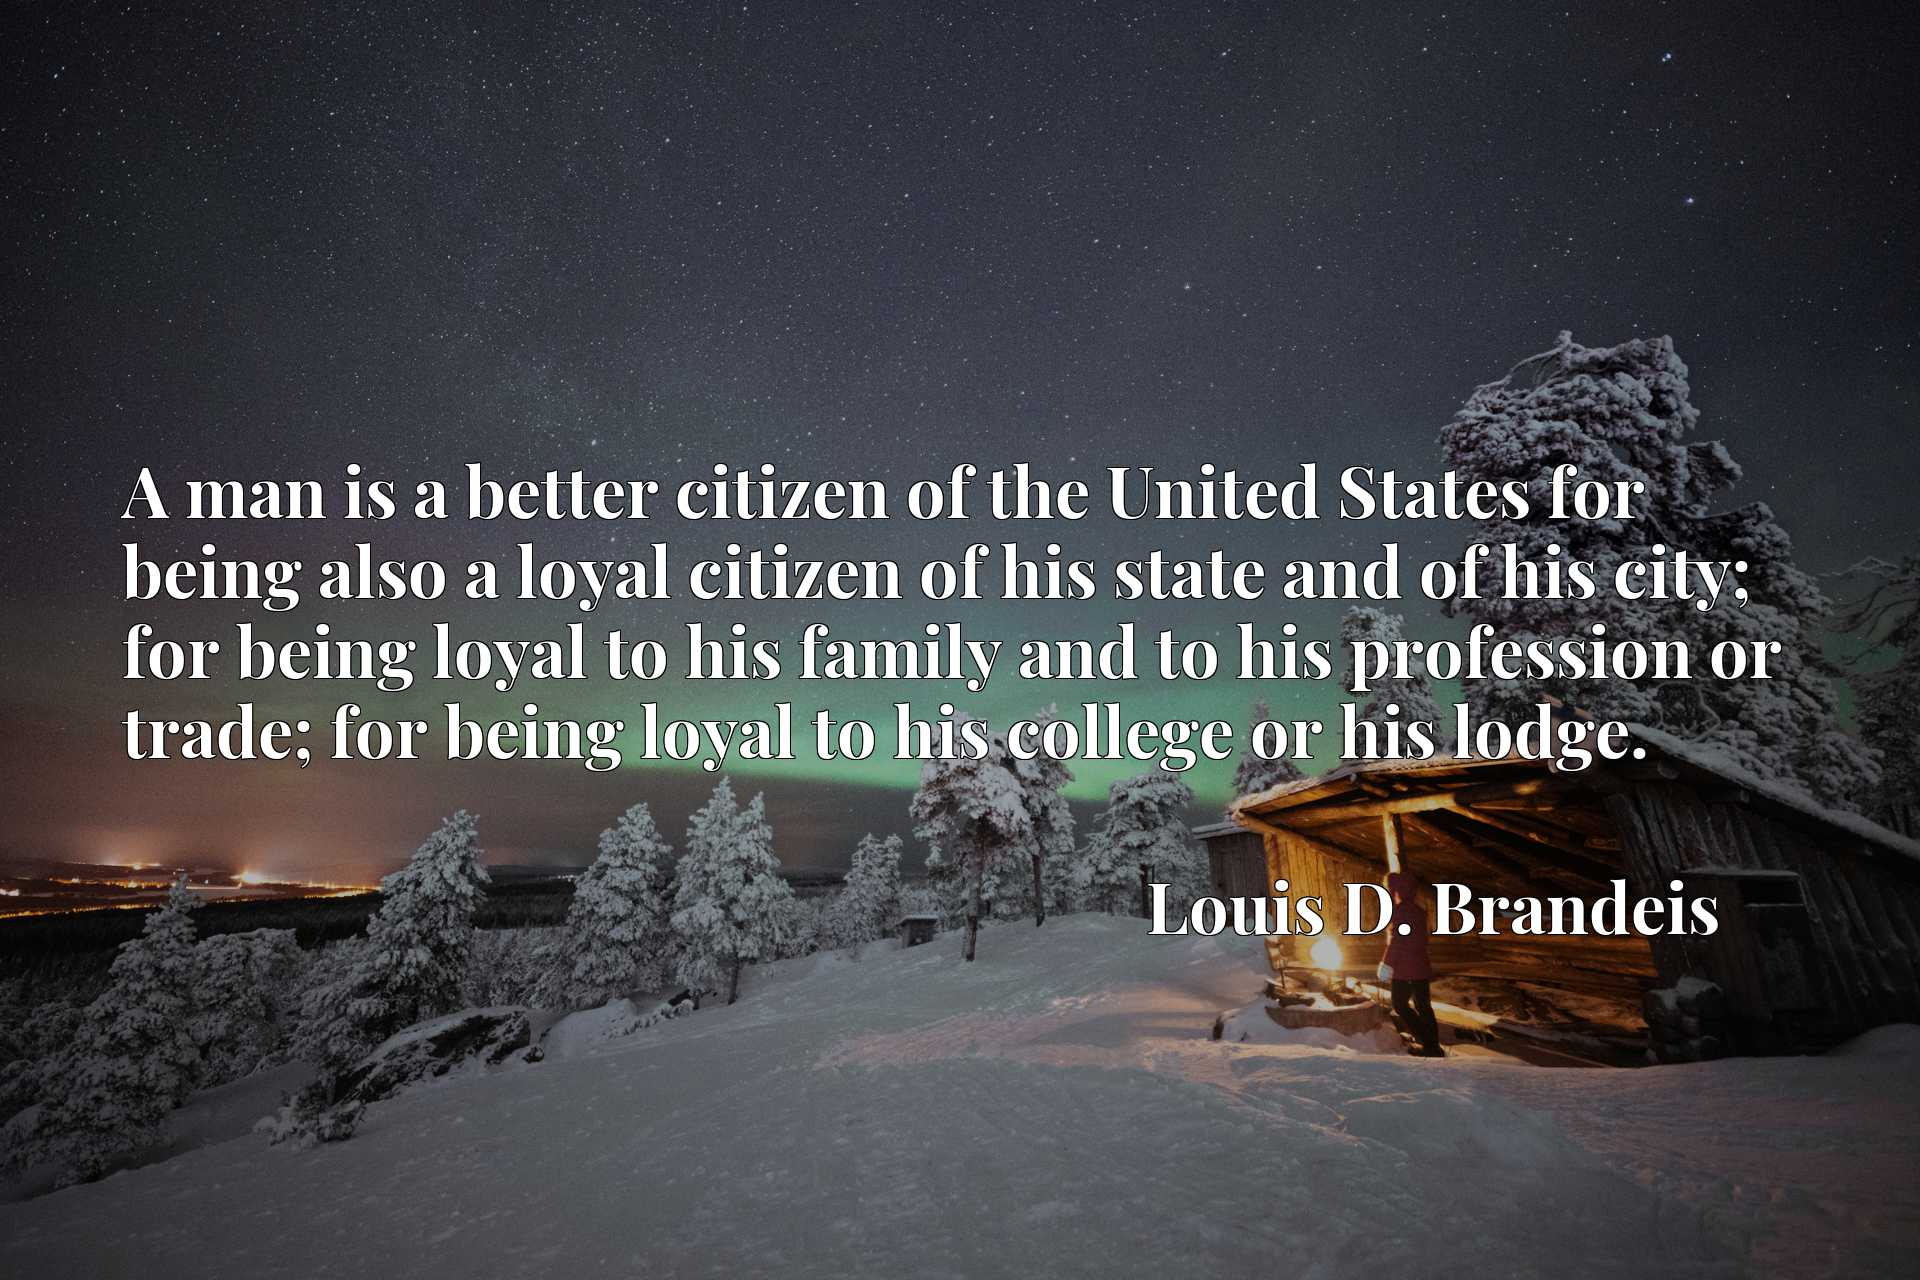 A man is a better citizen of the United States for being also a loyal citizen of his state and of his city; for being loyal to his family and to his profession or trade; for being loyal to his college or his lodge.